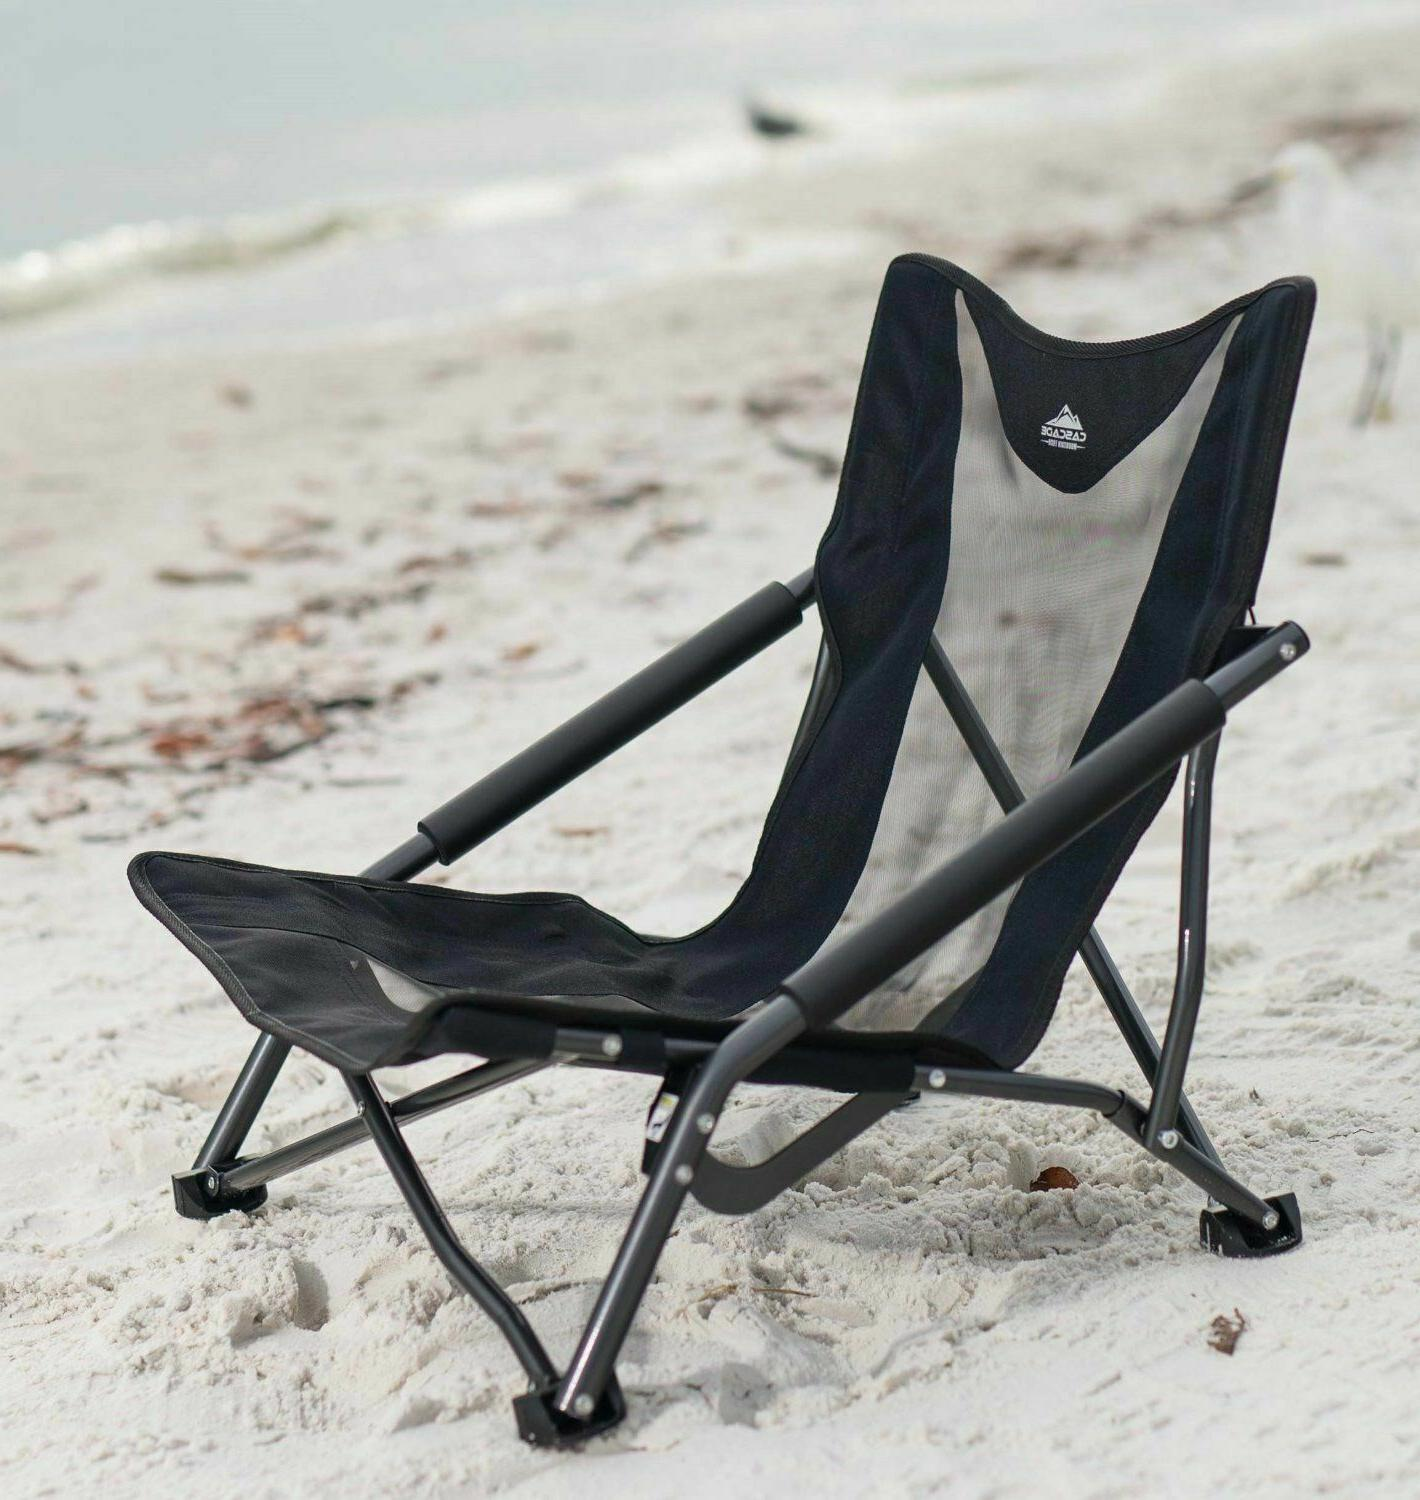 lightweight outdoor folding chair camping beach sports